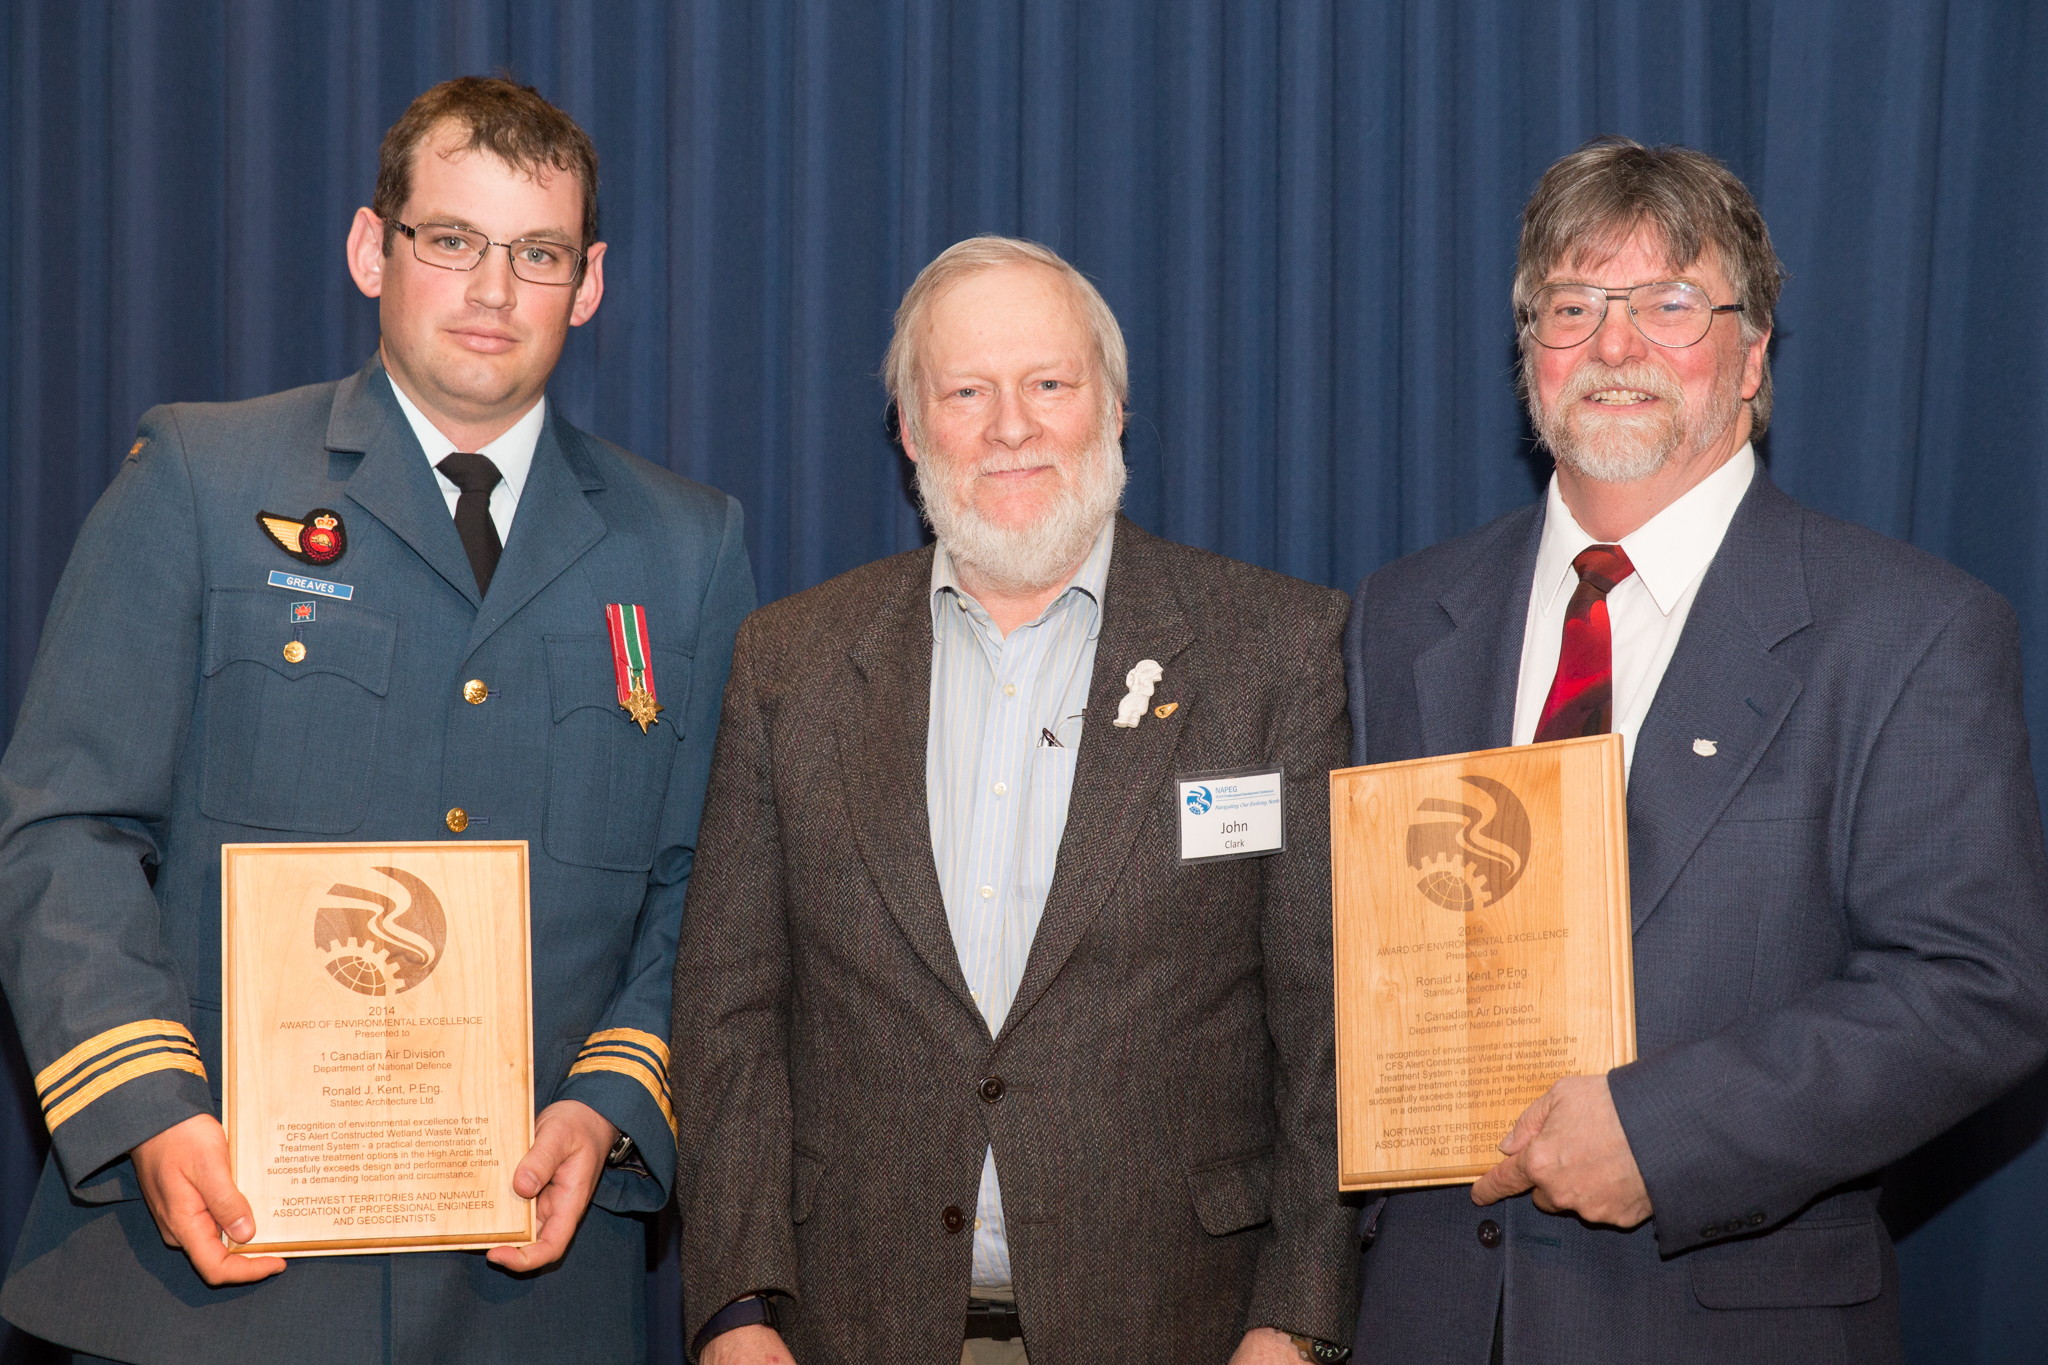 Major Chris Greaves (left) and Mr. Ronald Kent (right), of Stantec Architecture Ltd., accept an Award of Environmental Excellence from Mr. John Clark, of the Northwest Territories and Nunavut Association of Professional Engineers and Geoscientists (NAPEG), on May 15, 2014. The award recognized an in